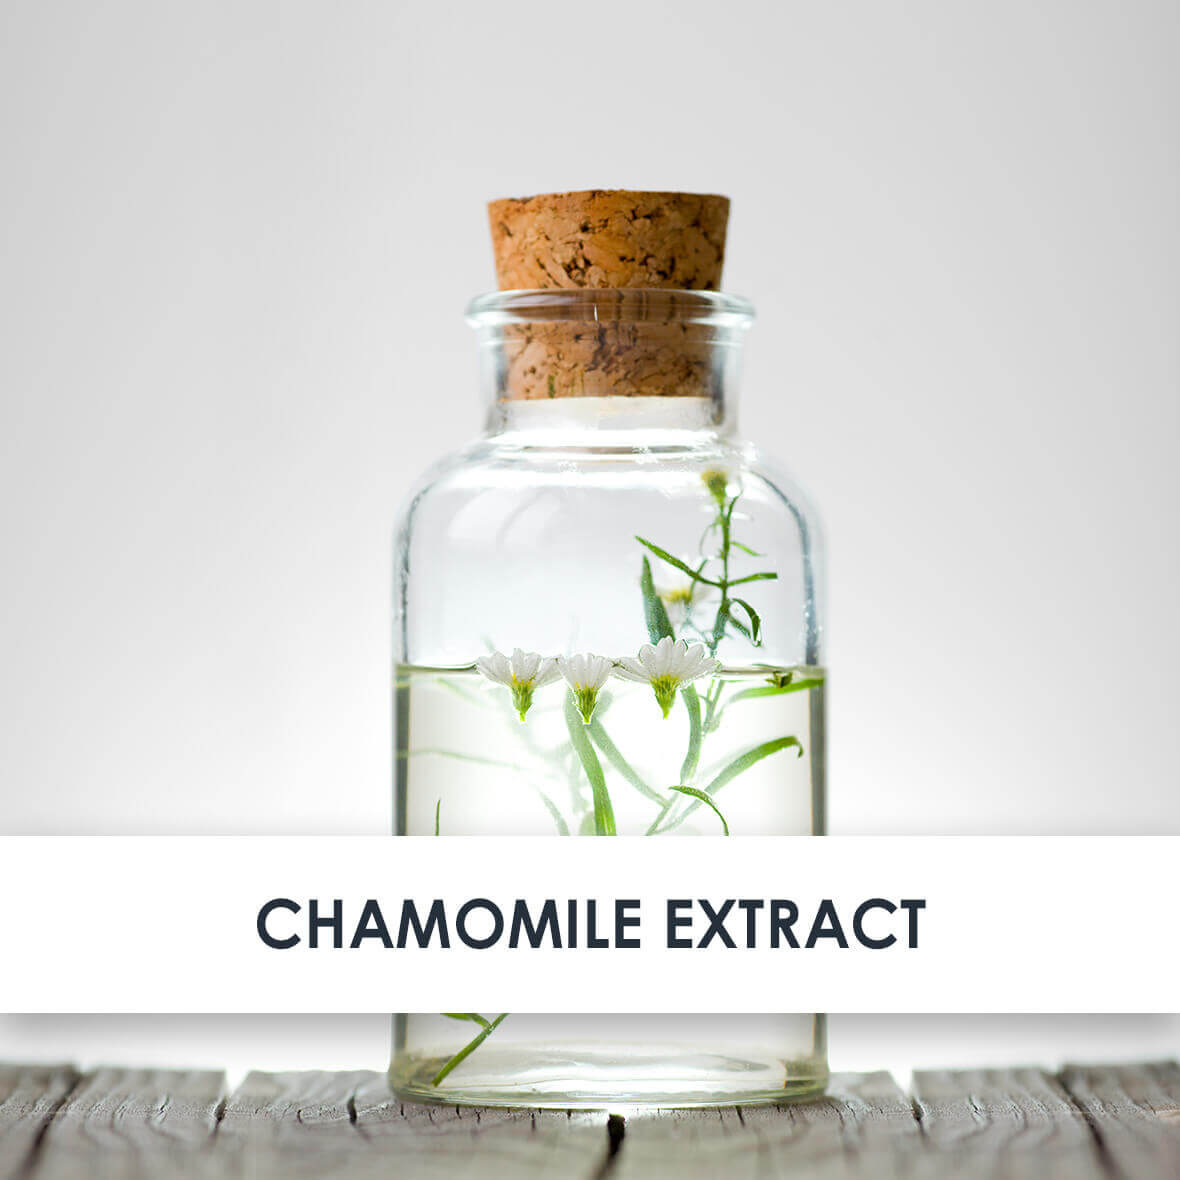 Chamomile Extract Skincare Benefits